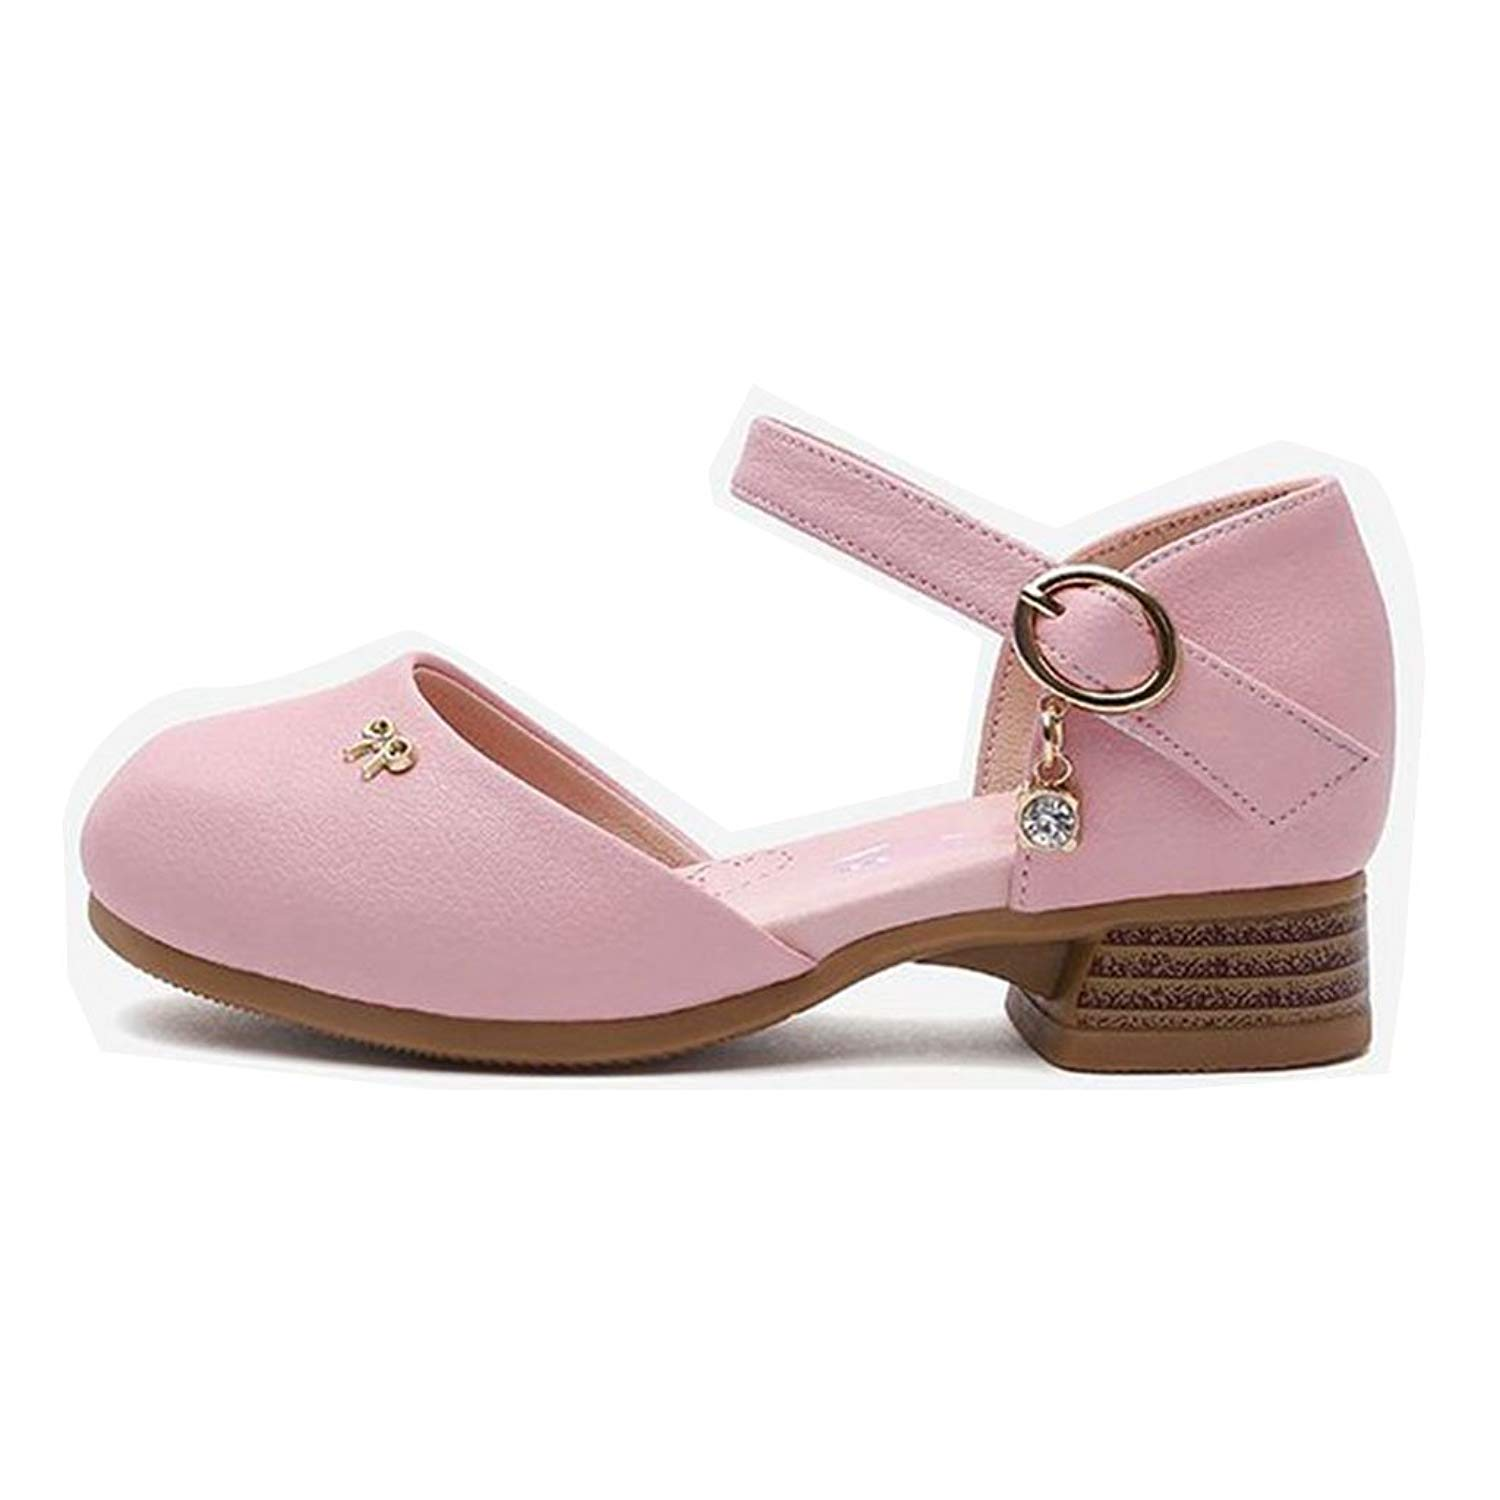 9fc61aef38e8 Get Quotations · GIY Kid Mary Jane Ballet Dress Shoes Casual Bowtie Slip on  Ballerina Princess Flat Shoes